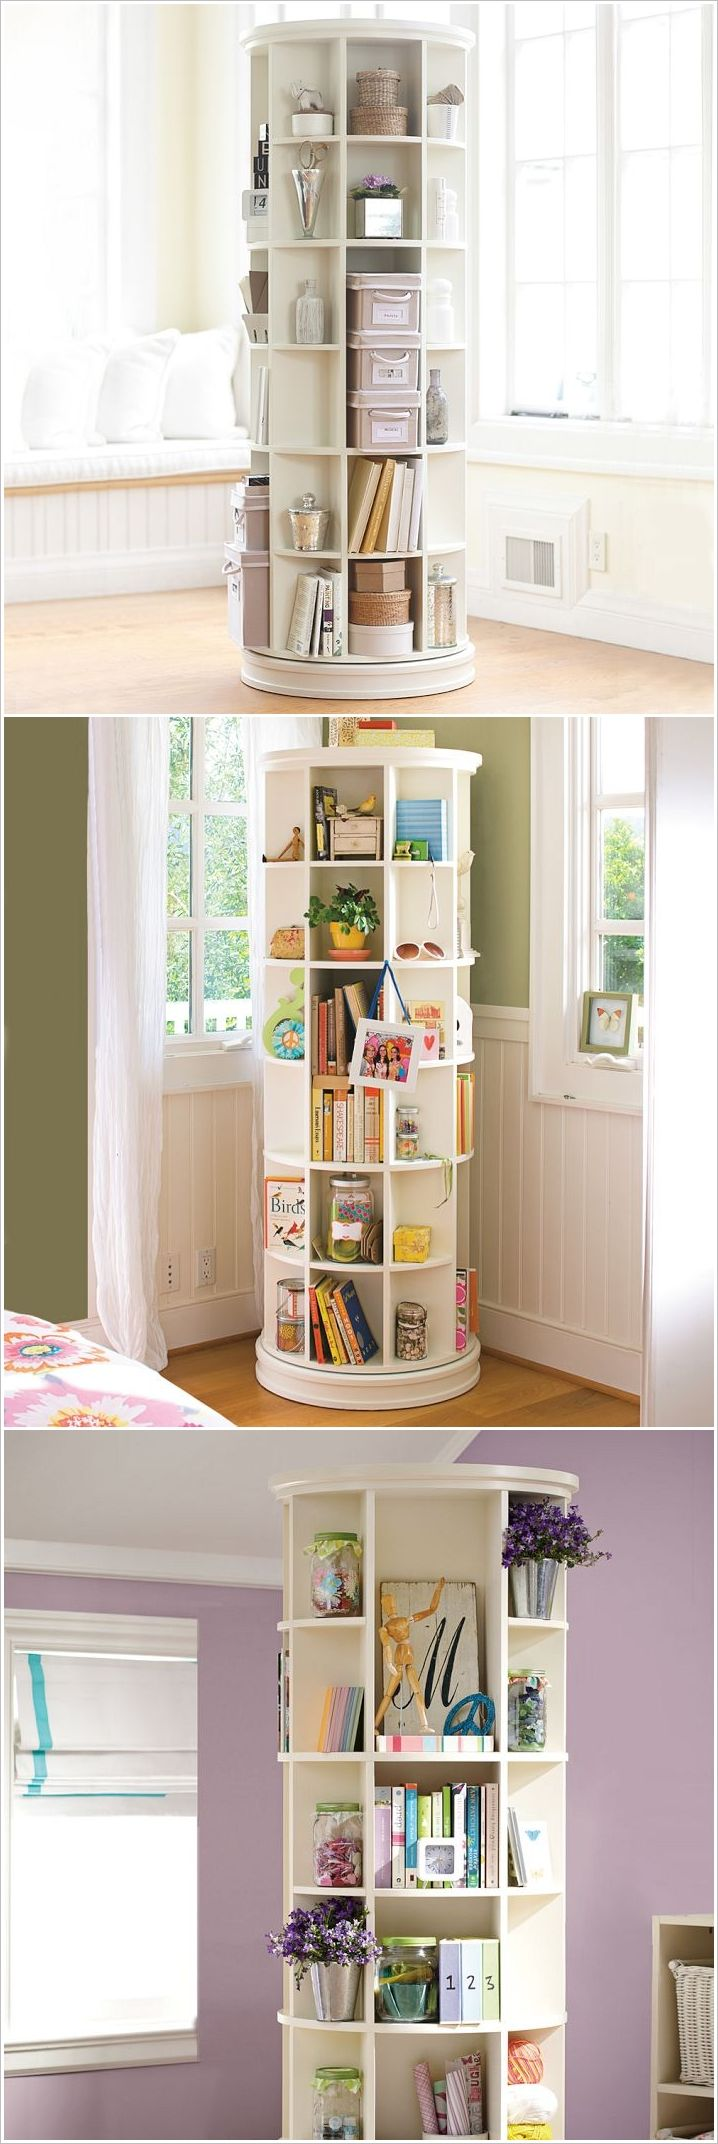 40 Smart Storage Ideas That Will Enlarge Your Space_homestheitcs (23)